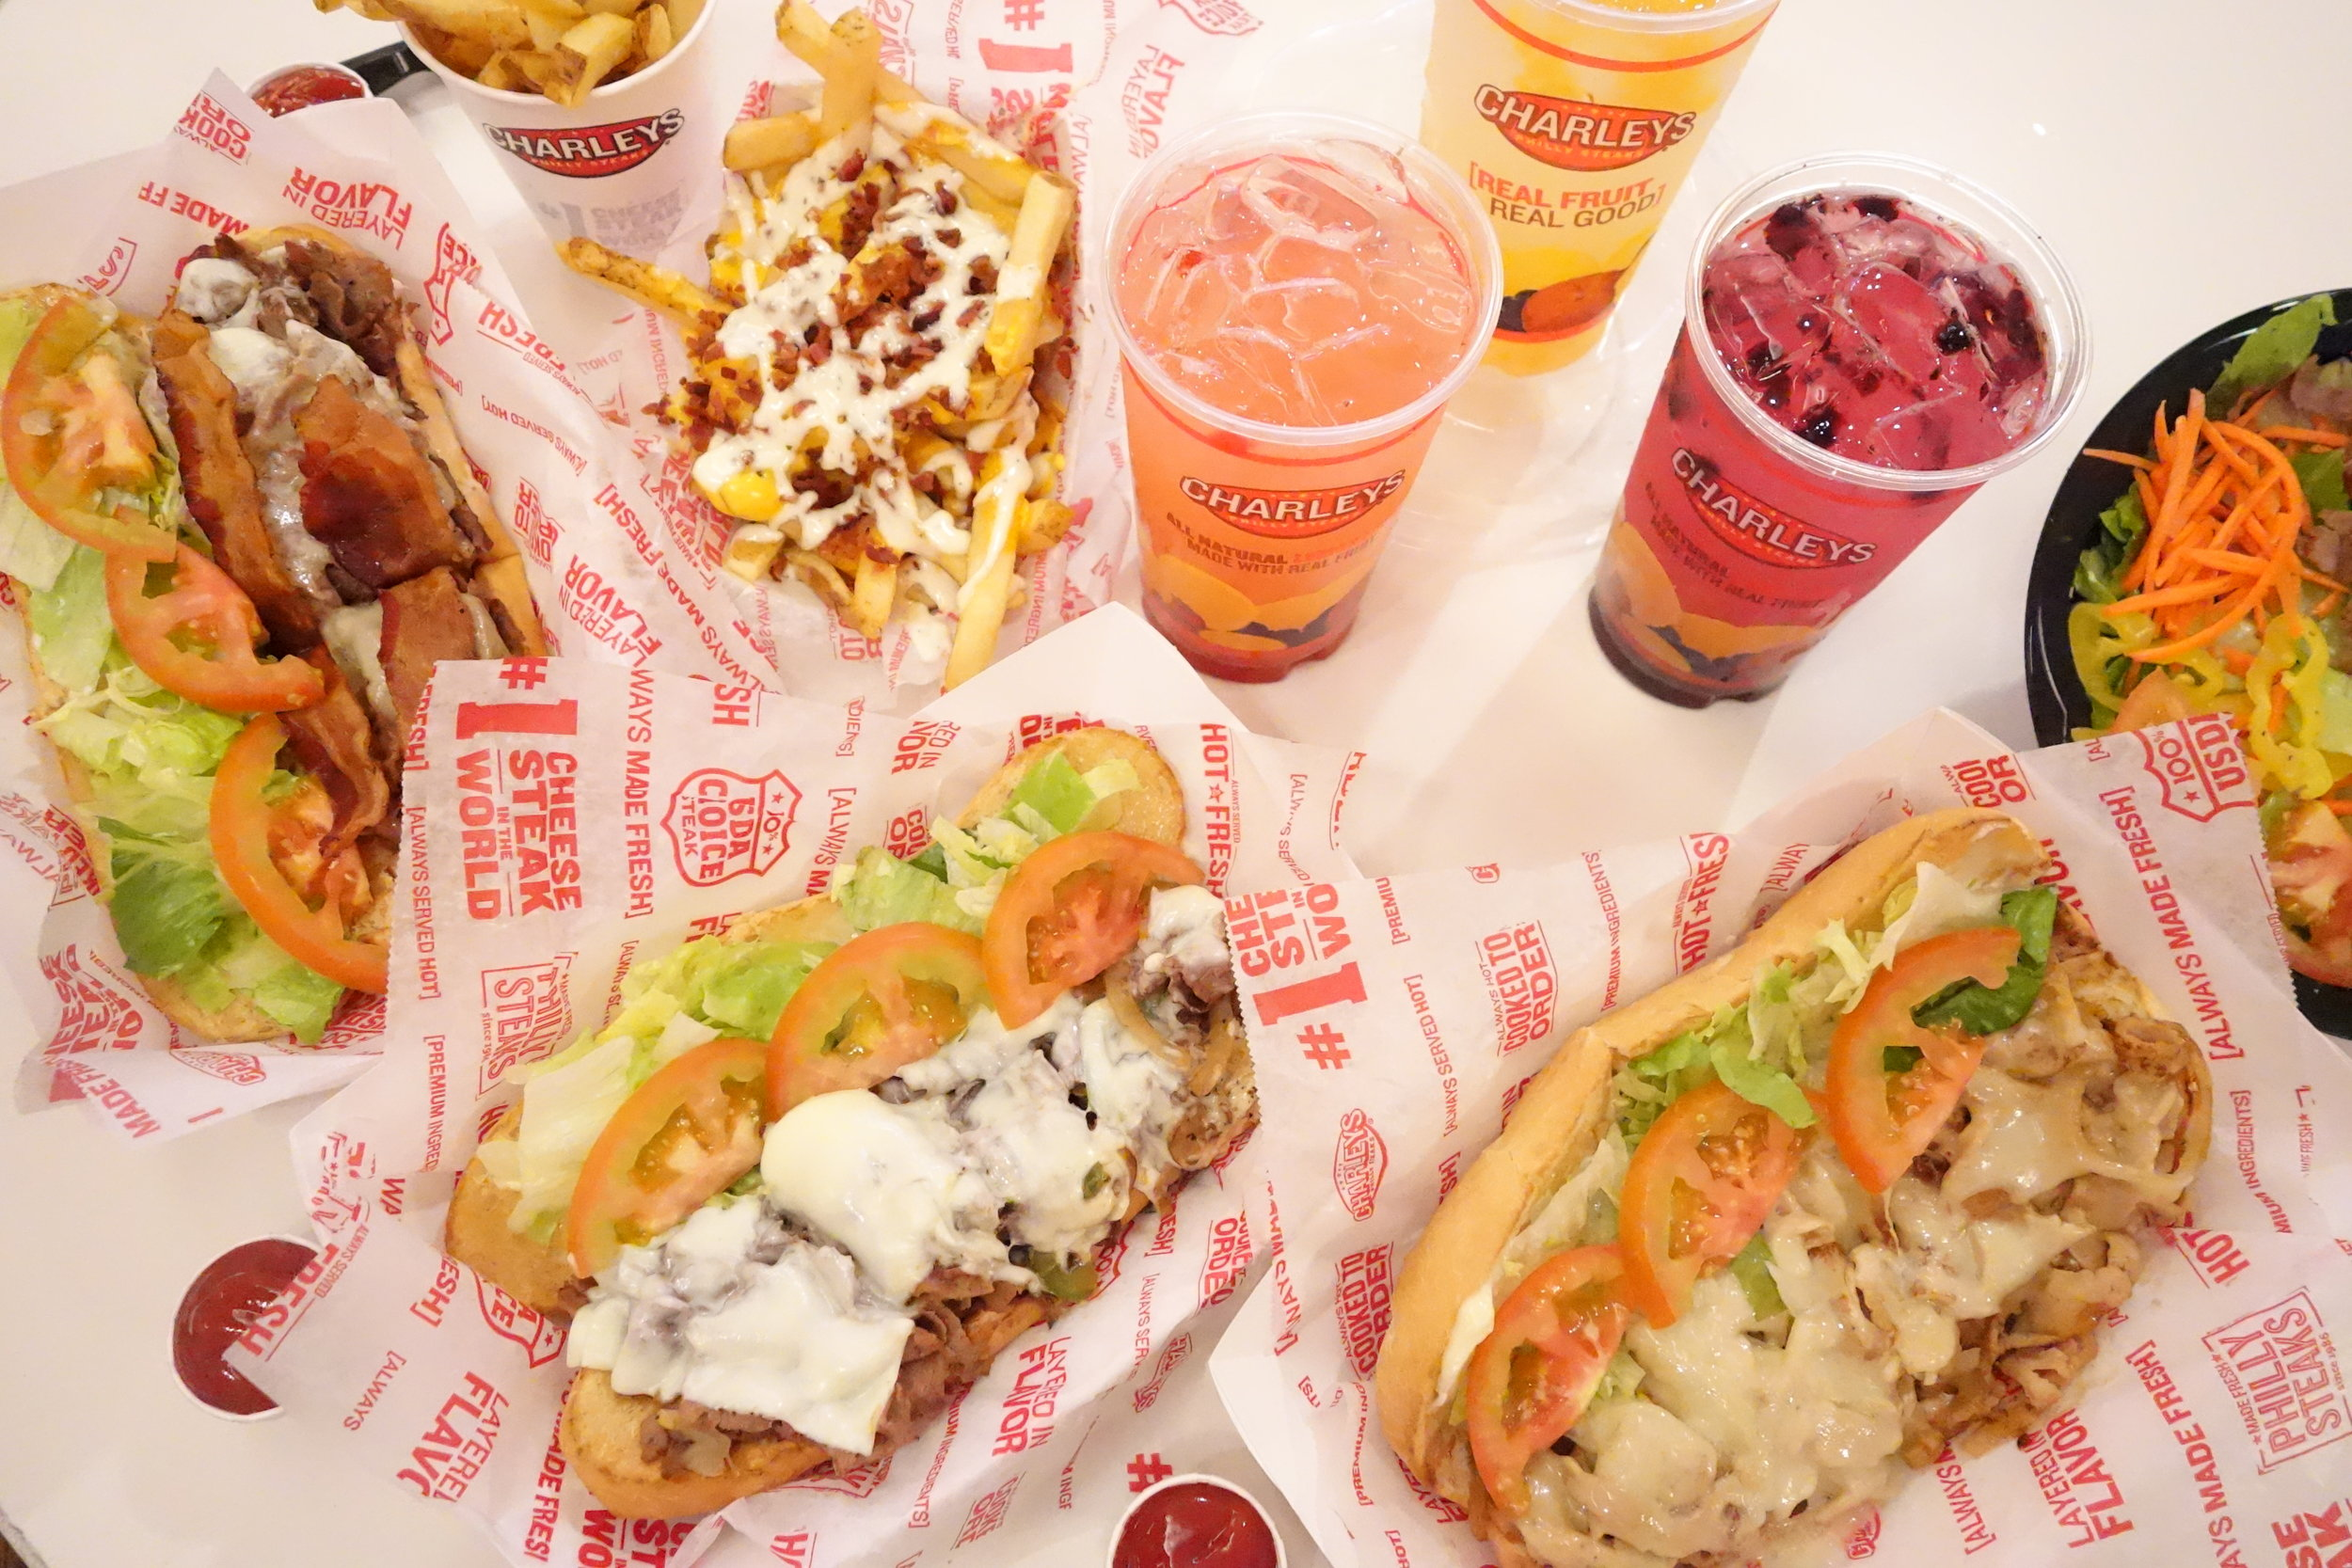 charleys-philly-steaks-sf-westfield-san-francisco-centre-sandwiches-philly-cheese-steak-lemonade-sf-restaurants-lunch-spots